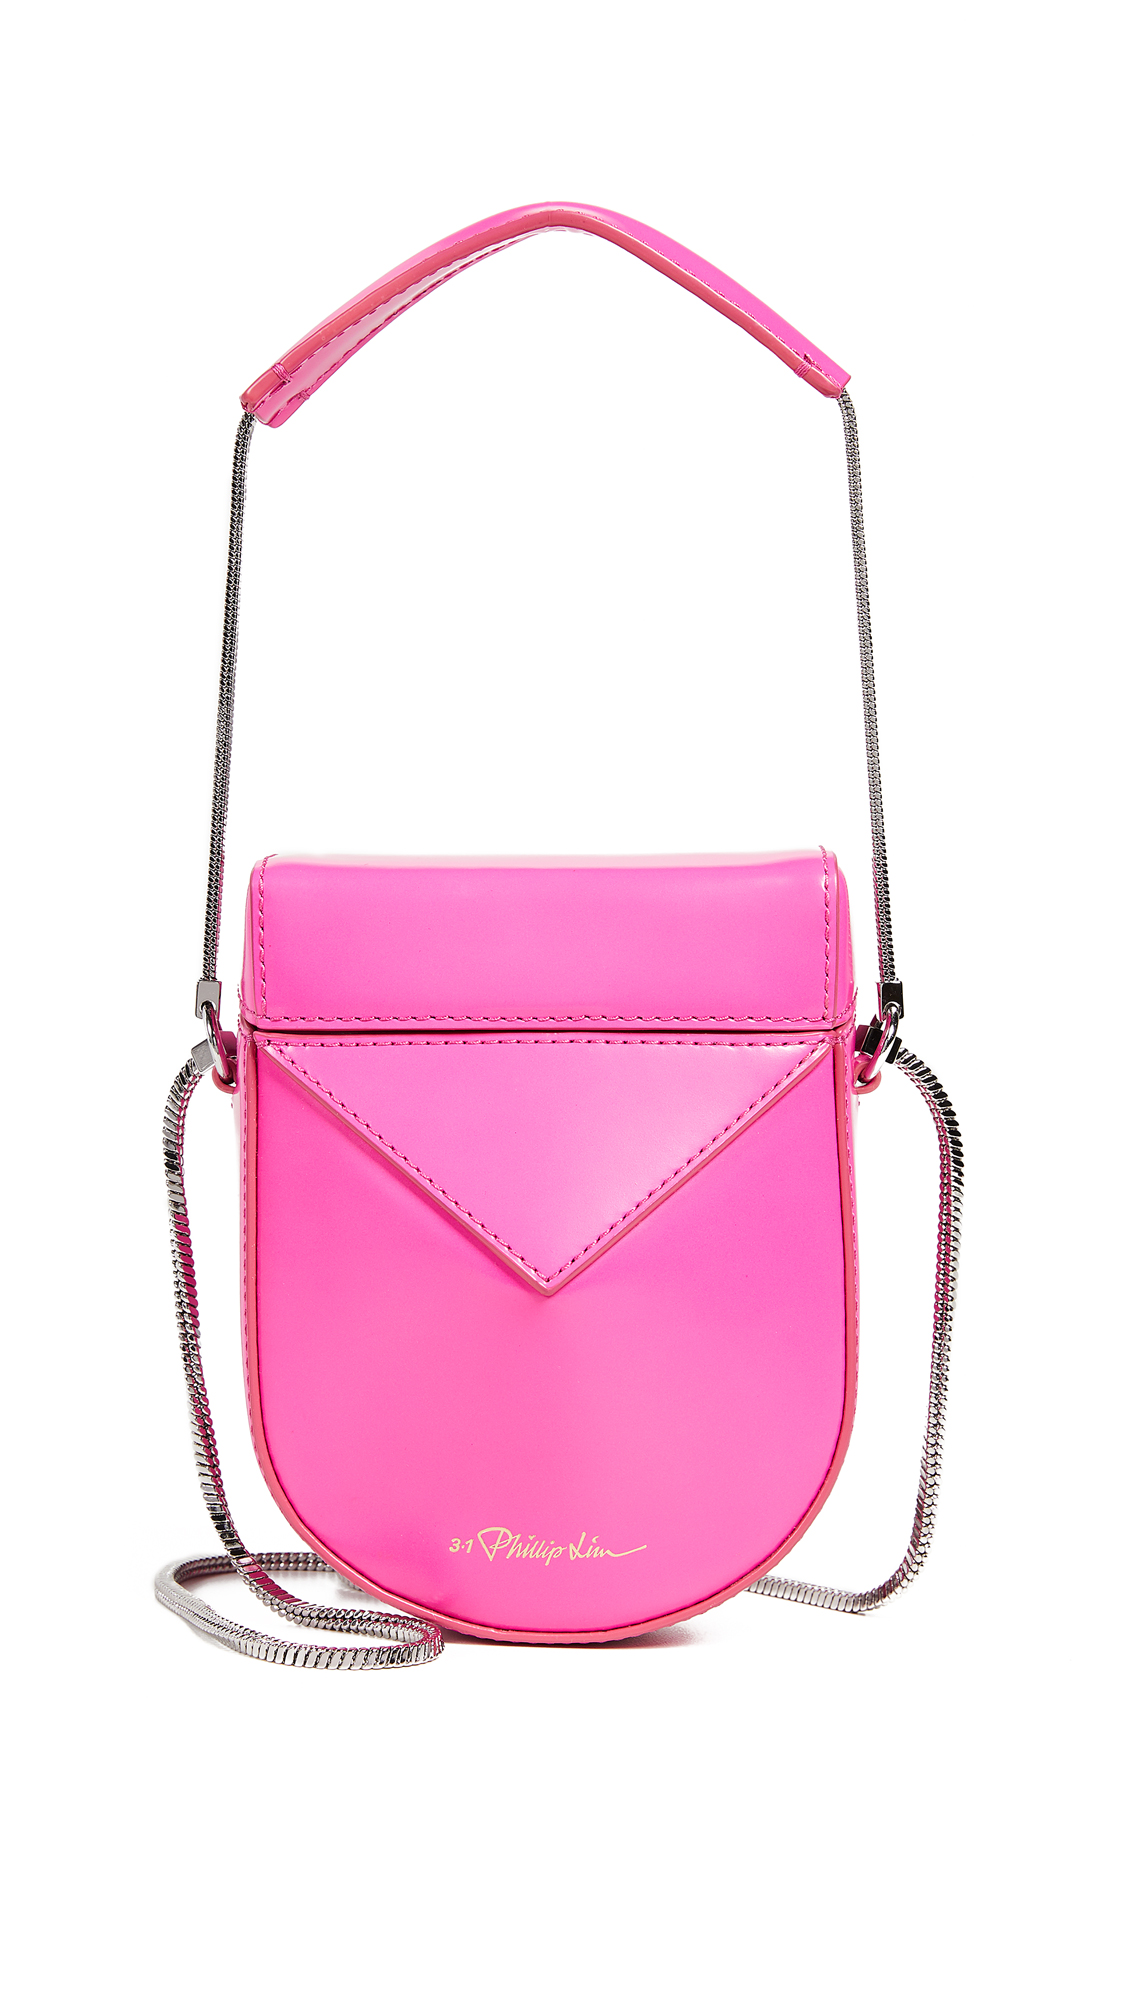 SMALL CROSS BODY BAG WITH CHAIN